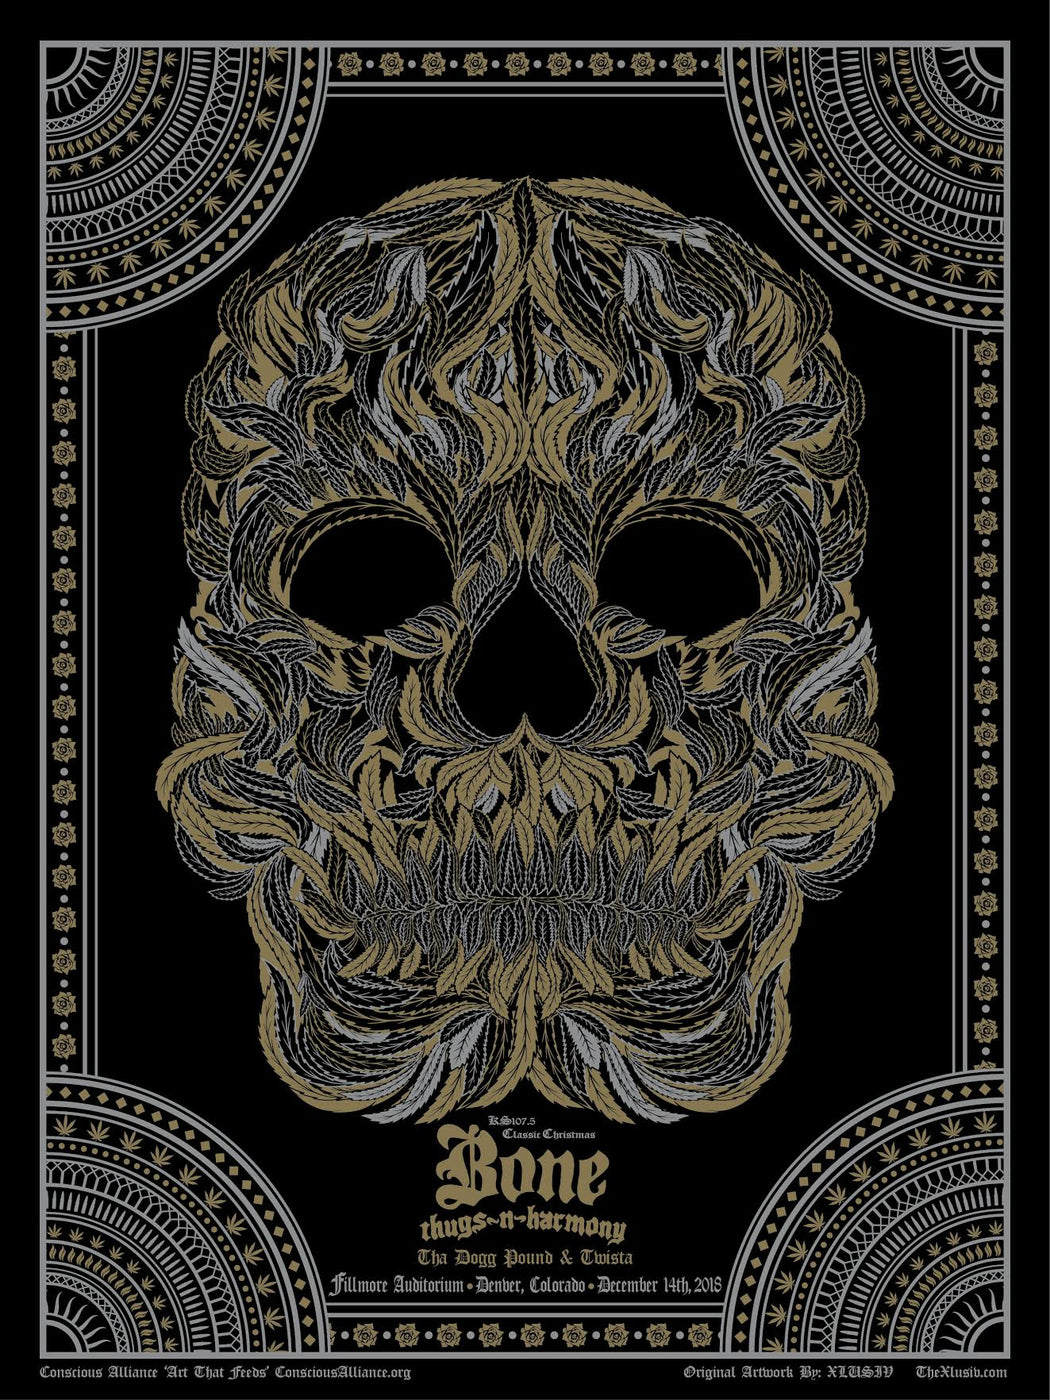 Bone Thugs-N-Harmony Denver - 2018